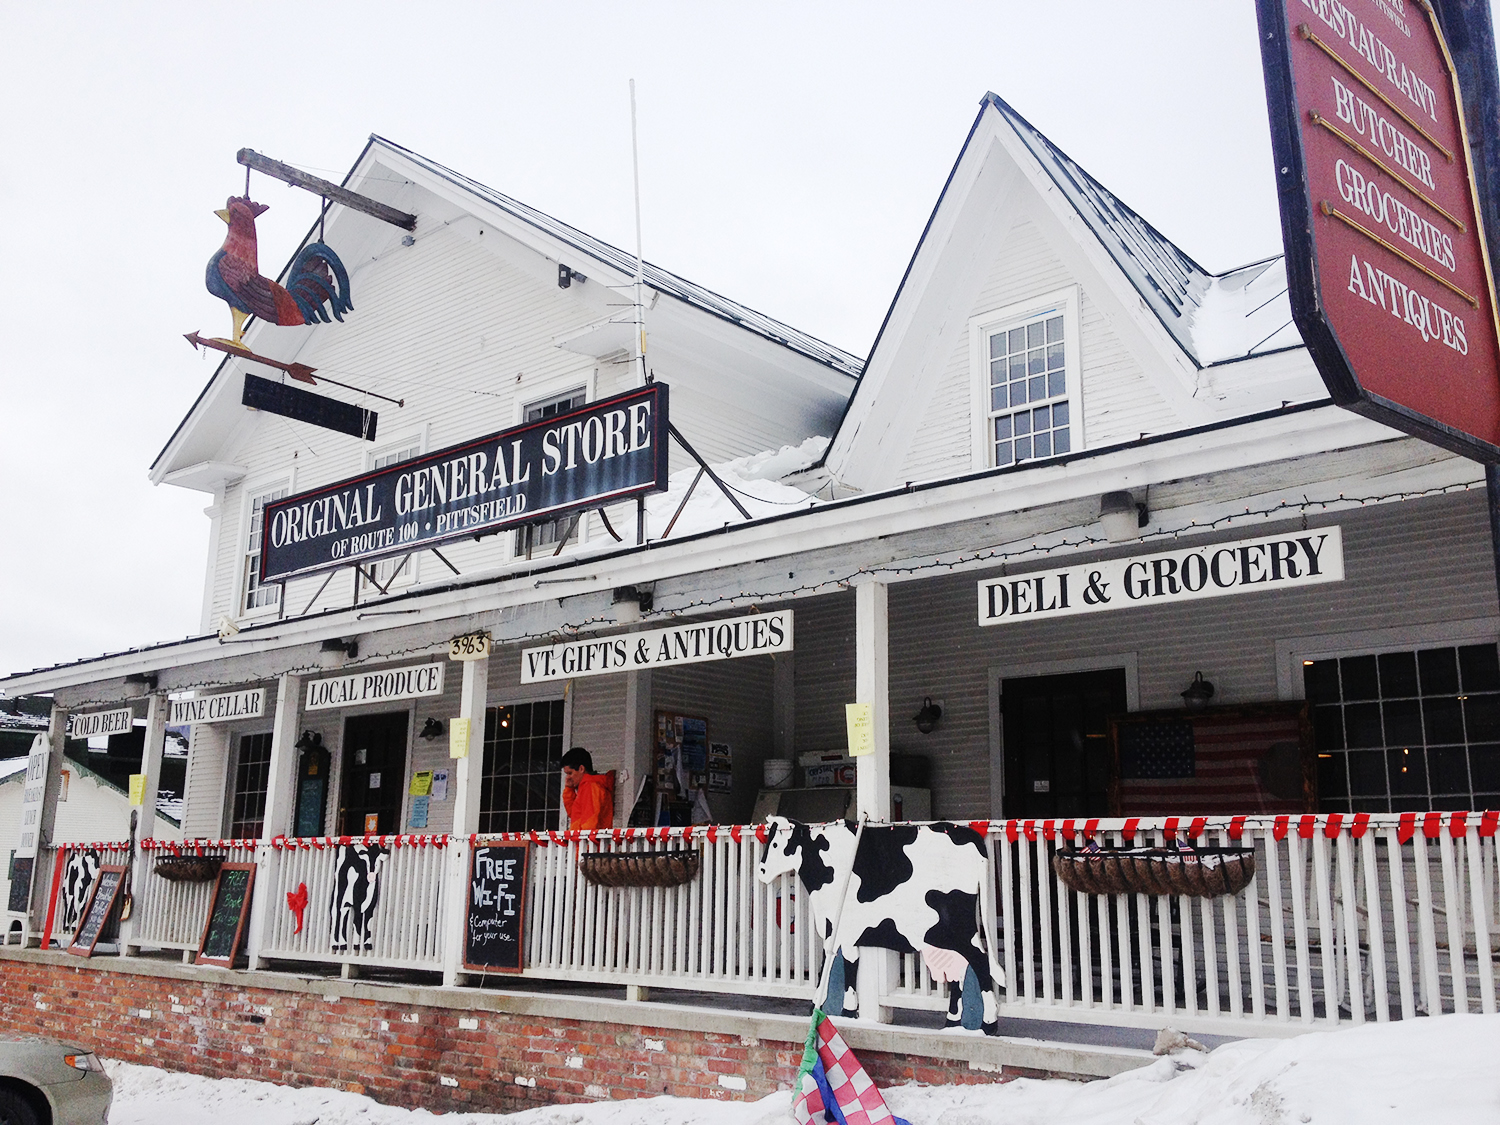 Original Country Store: Pittsfield, VT - Your perfect stop for a warm meal, old time penny candy, fresh juices and real fruit smoothies, groceries, a full wine cellar and lots of fun Vermont products and souvenirs, including Barn Owl Felted Soap!